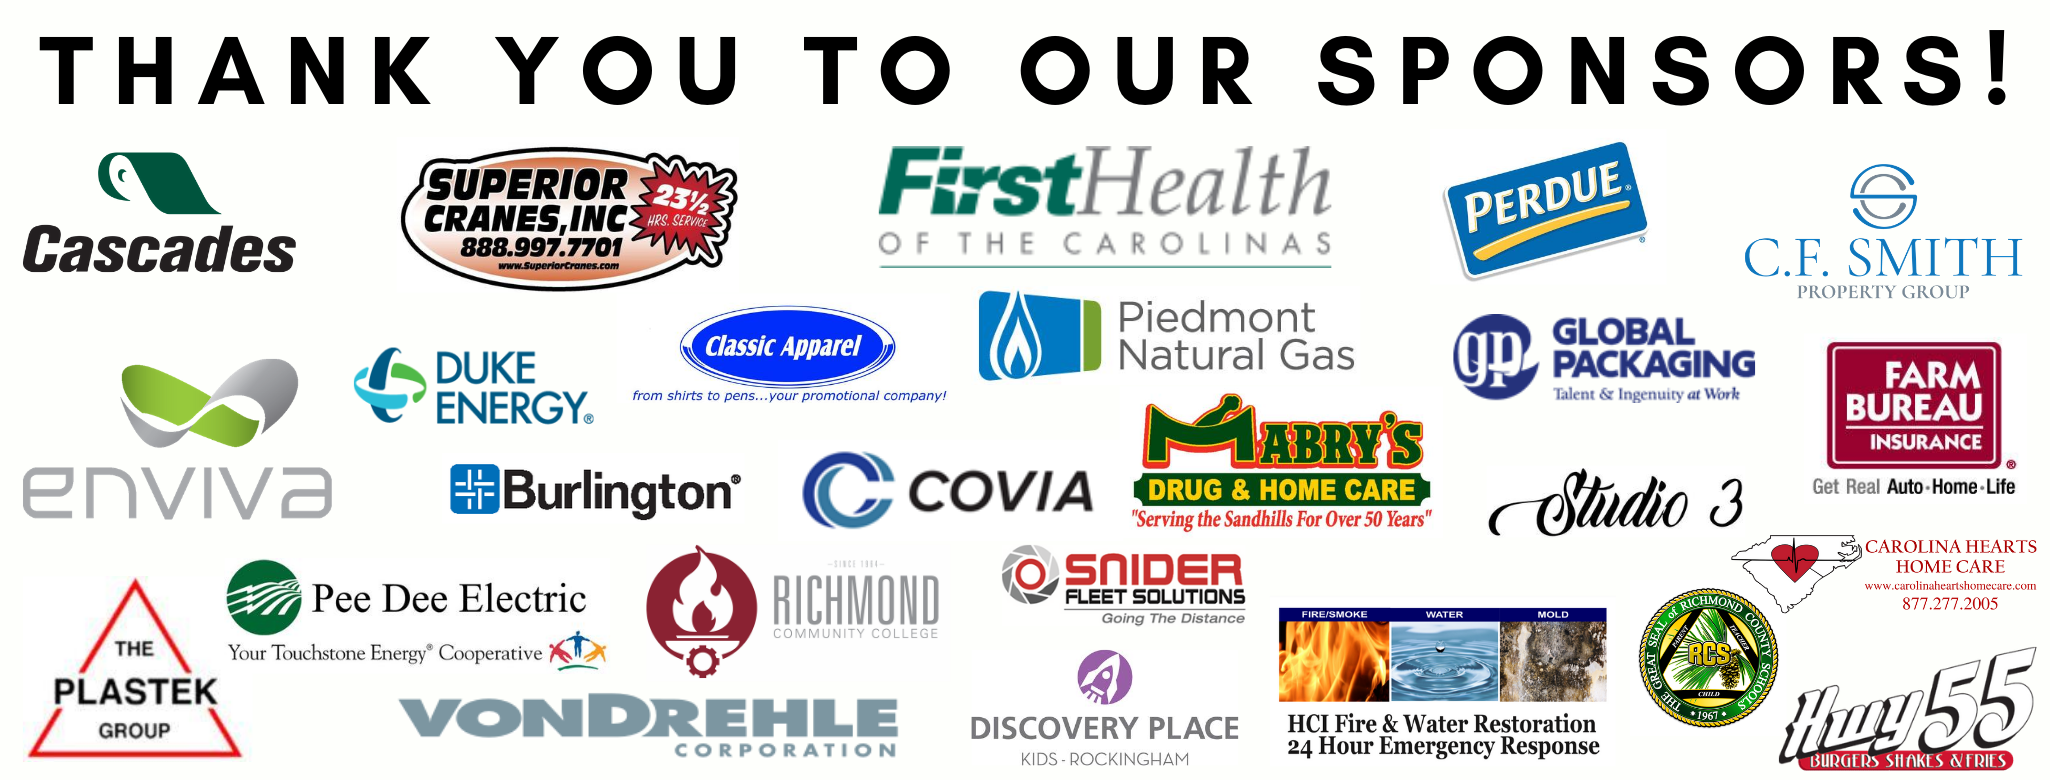 Thank you to our sponsors! (3)